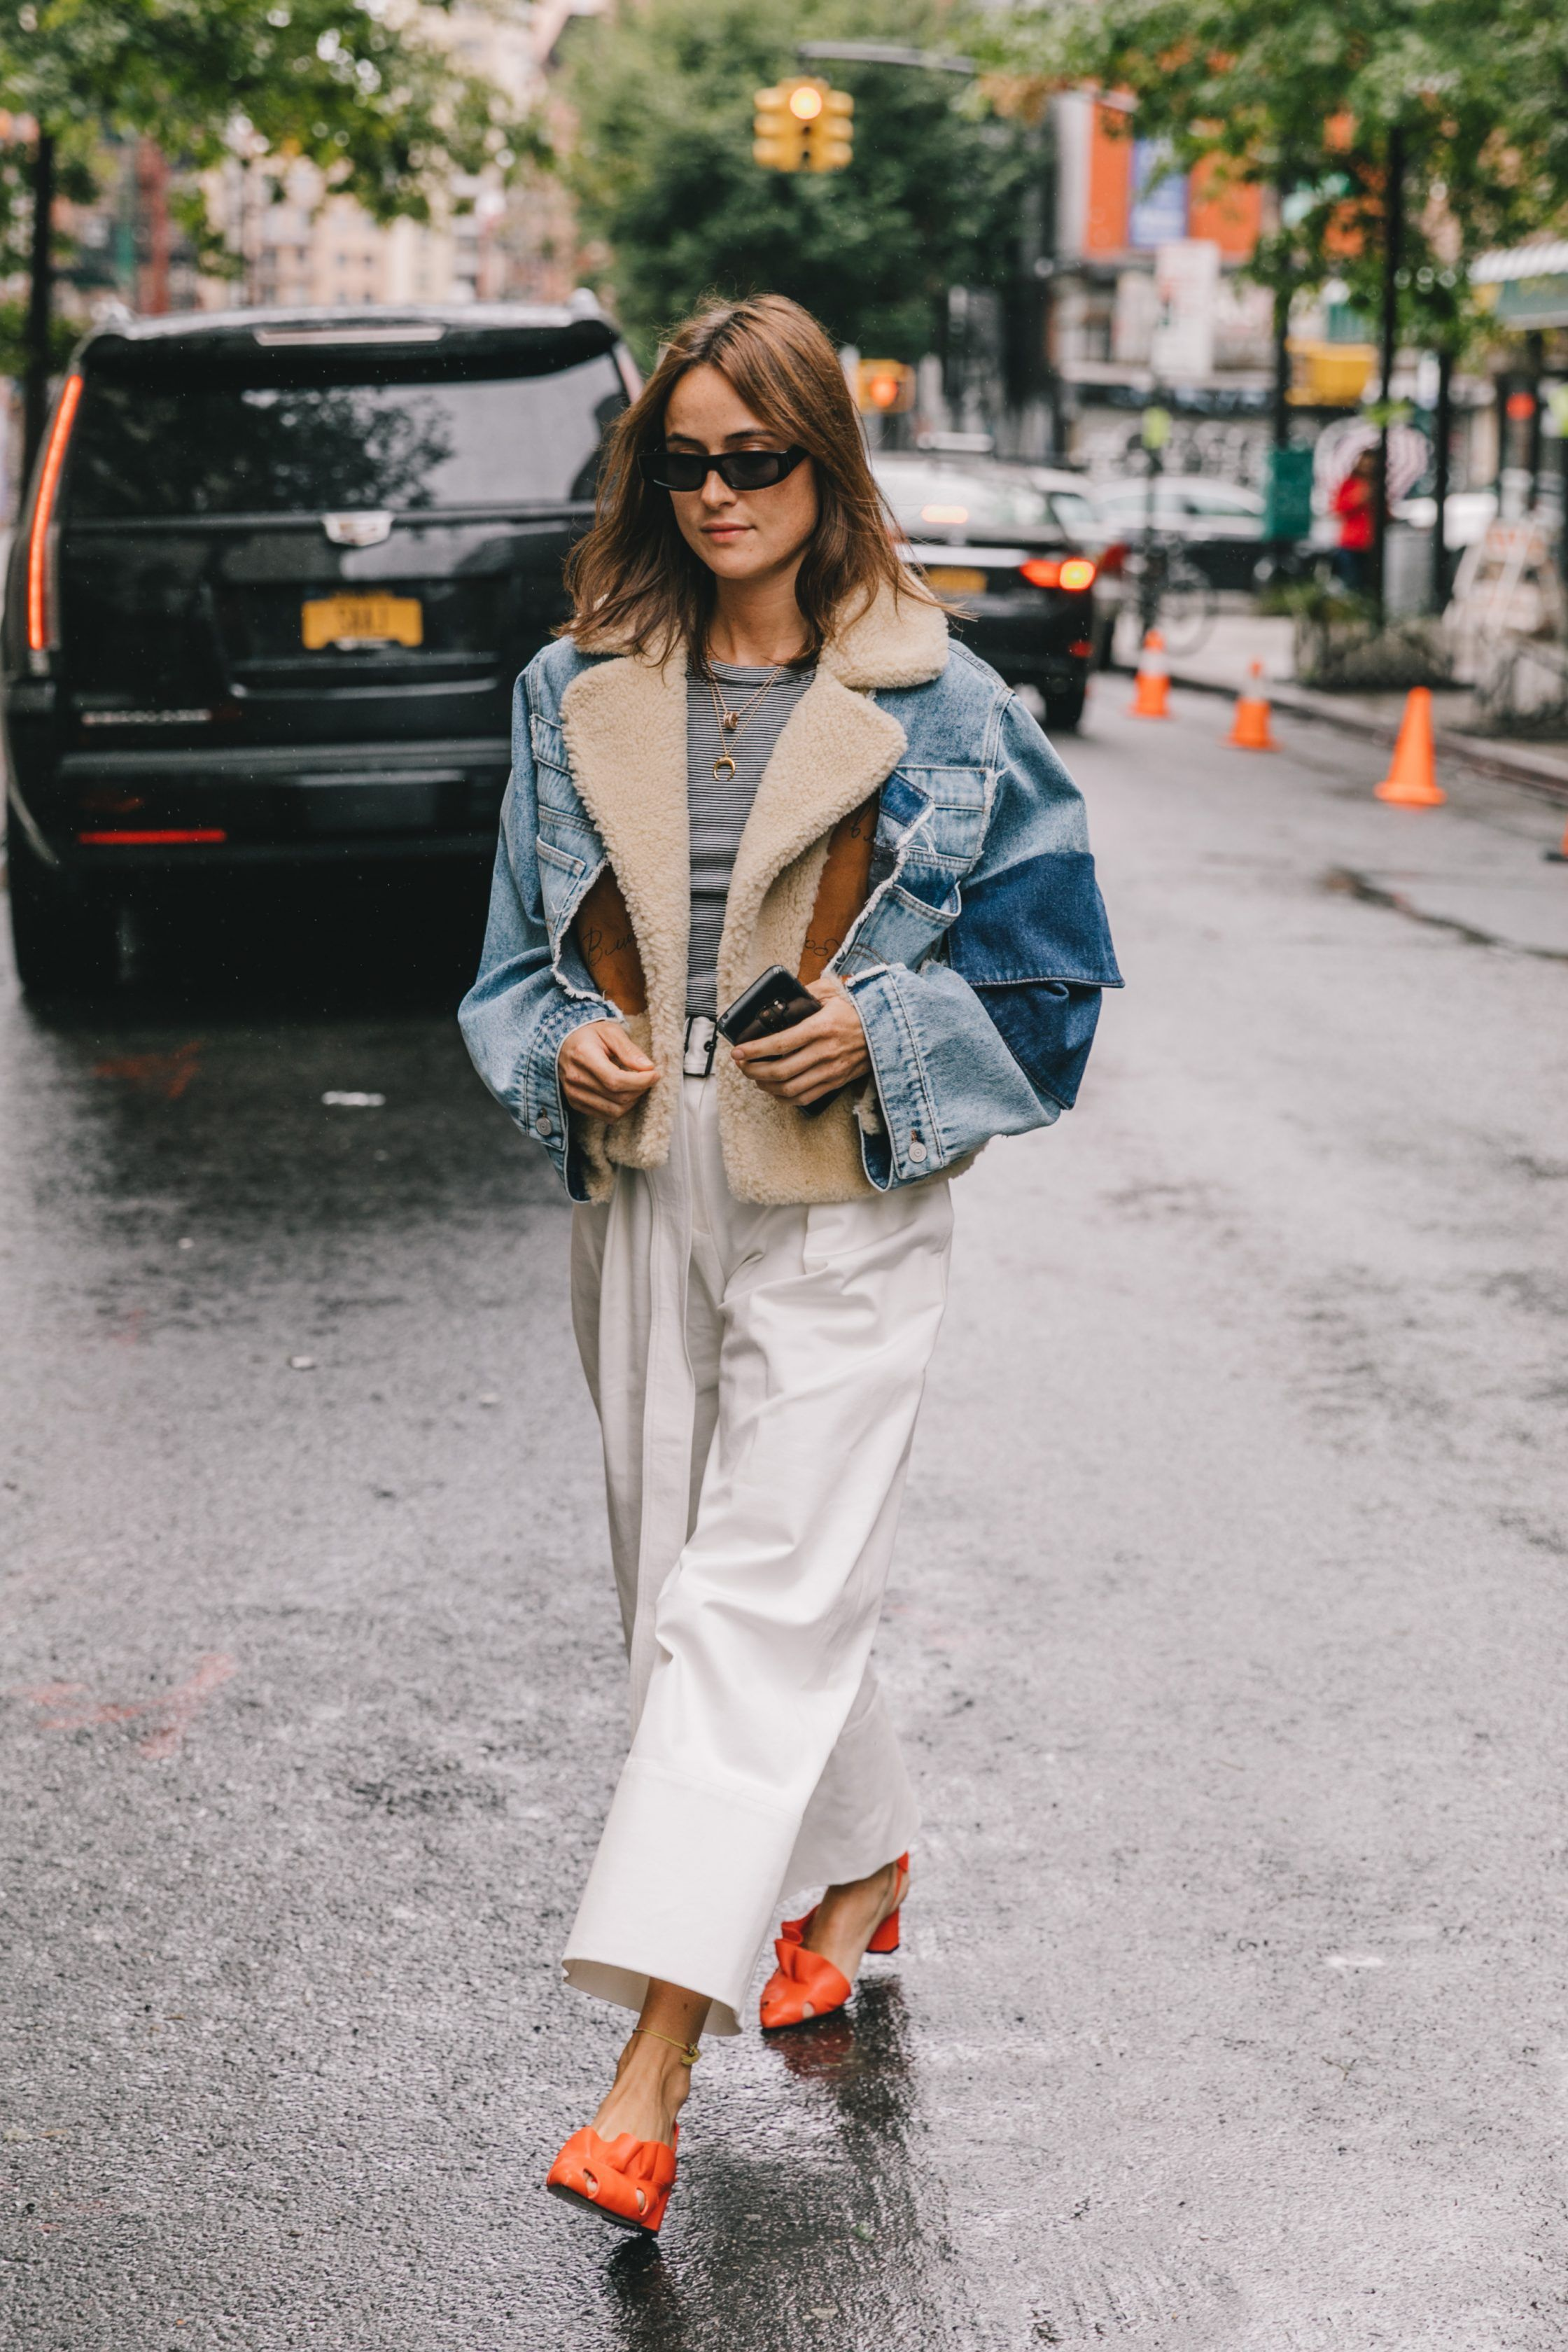 Spring Summer 2019 Street Style from New York Fashion Week